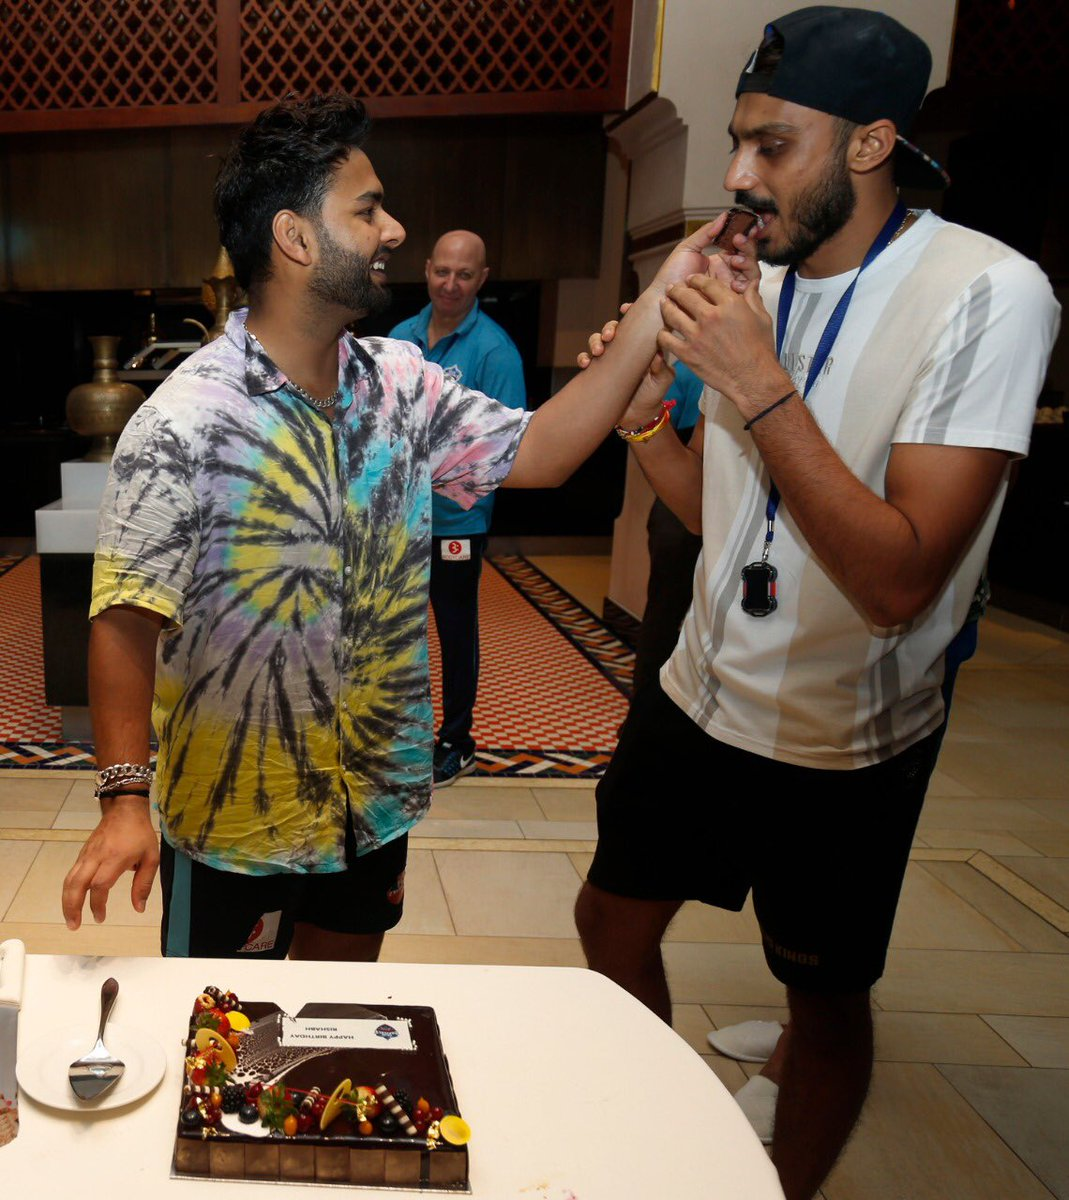 Happy Birthday, @akshar2026 bhai! Cheers to many more years of partnerships on and off the field!